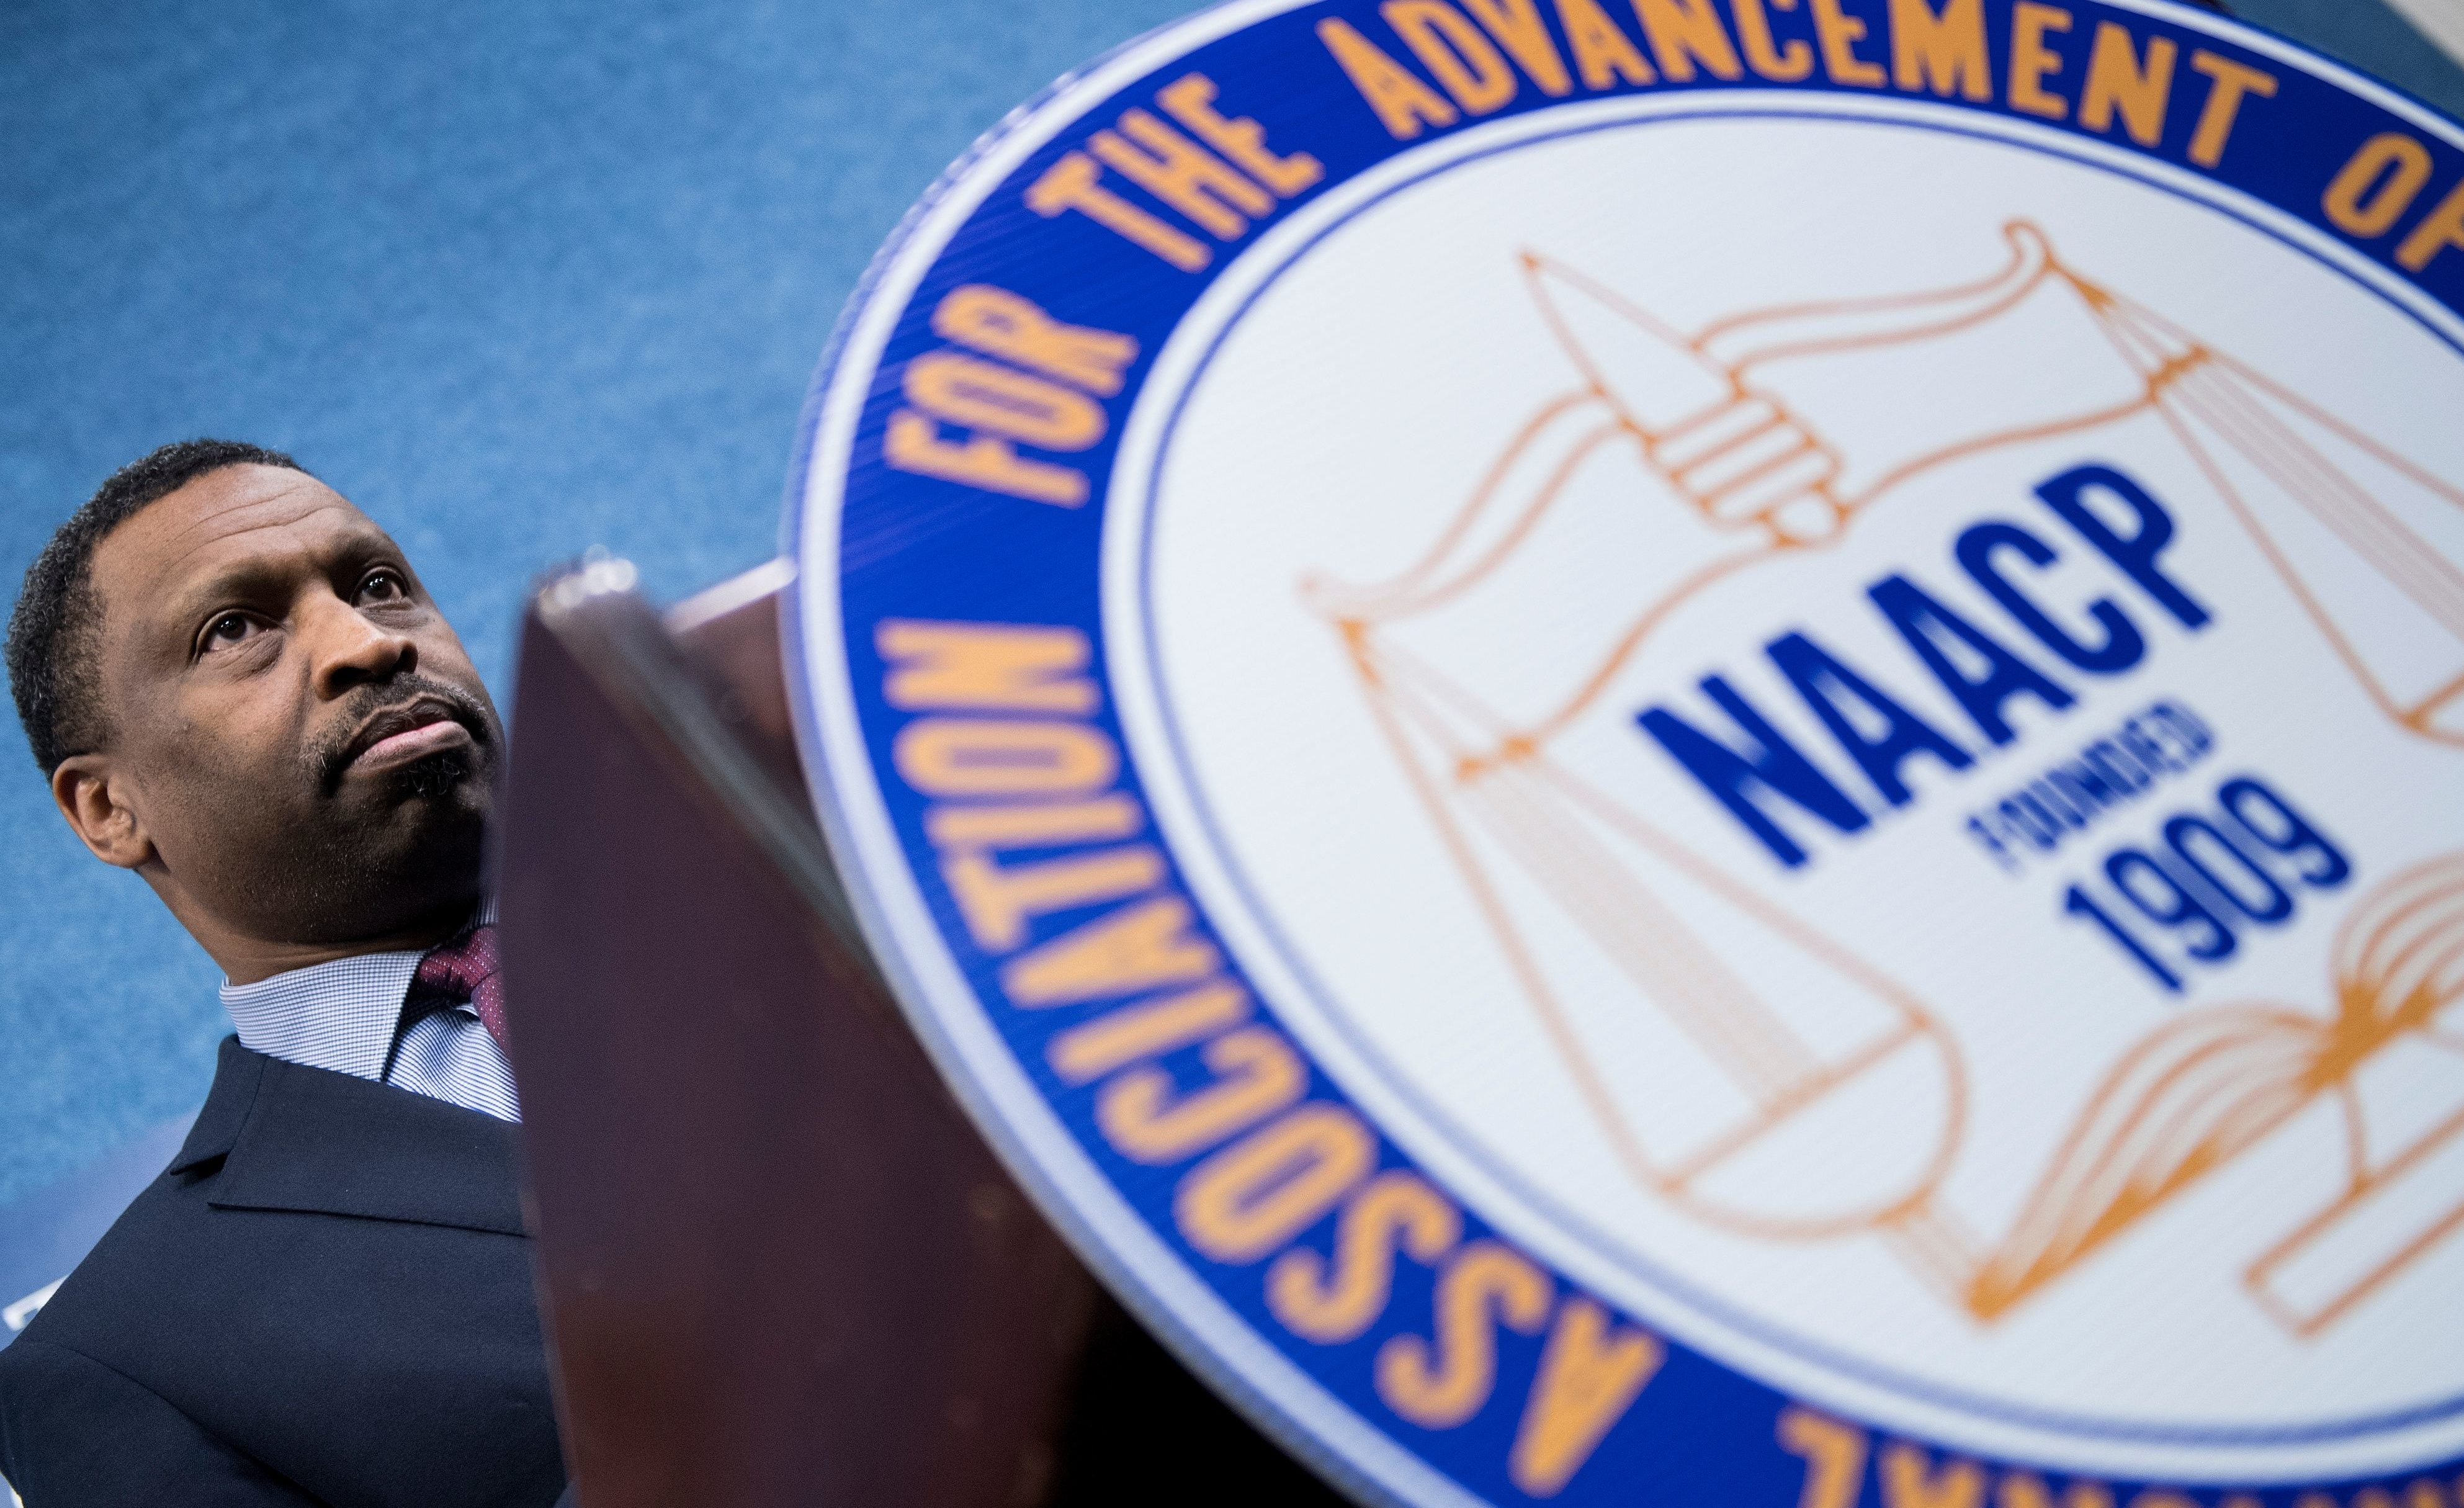 NAACP Campaigns To Increase Long-Term Black Voter Turnout